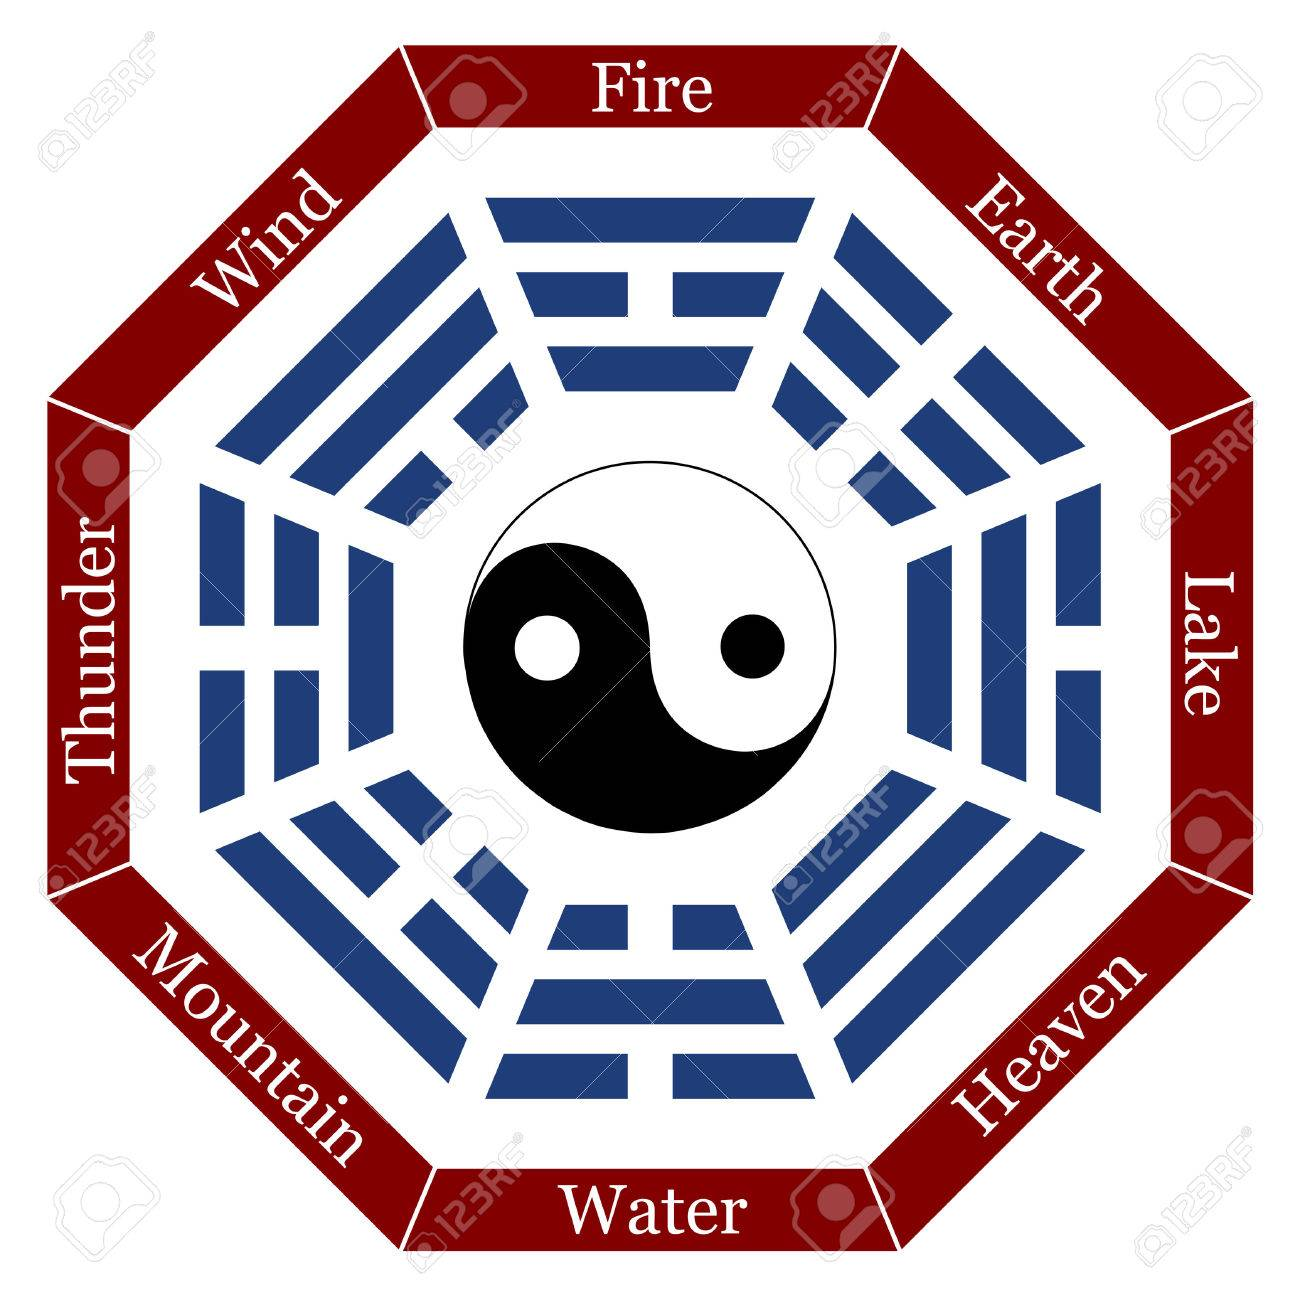 I Ching With Eight Trigrams The Corresponding Names And A Yin